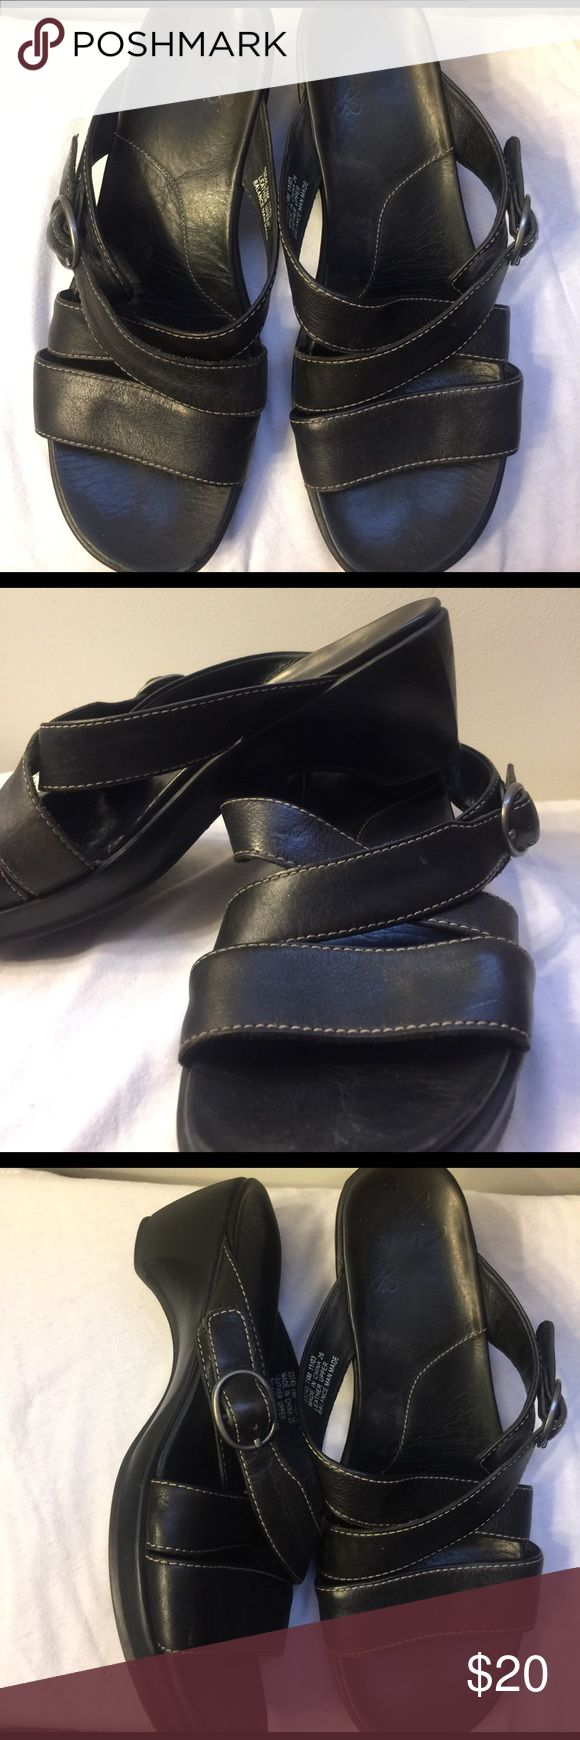 Clarks Sandals Size 7 1/2 $20 Clarks Black Leather Sandals Size 7 1/2 $20 Born Shoes Sandals